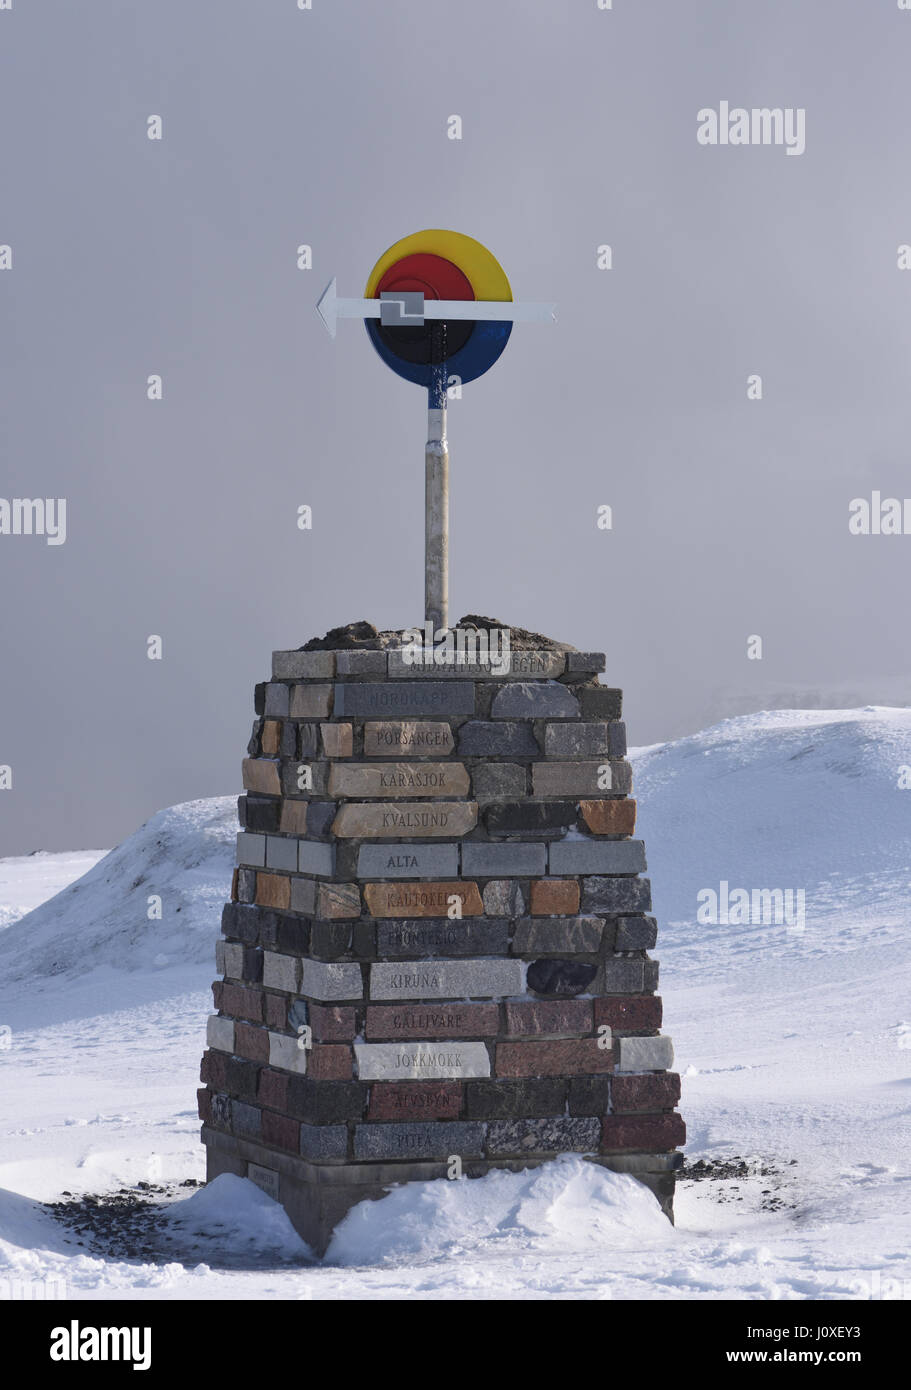 Sign  marking the start of the Midnattsolvegen, the Midnight Sun Road, from North Cape, Nordkapp to Pitea in Sweden. - Stock Image